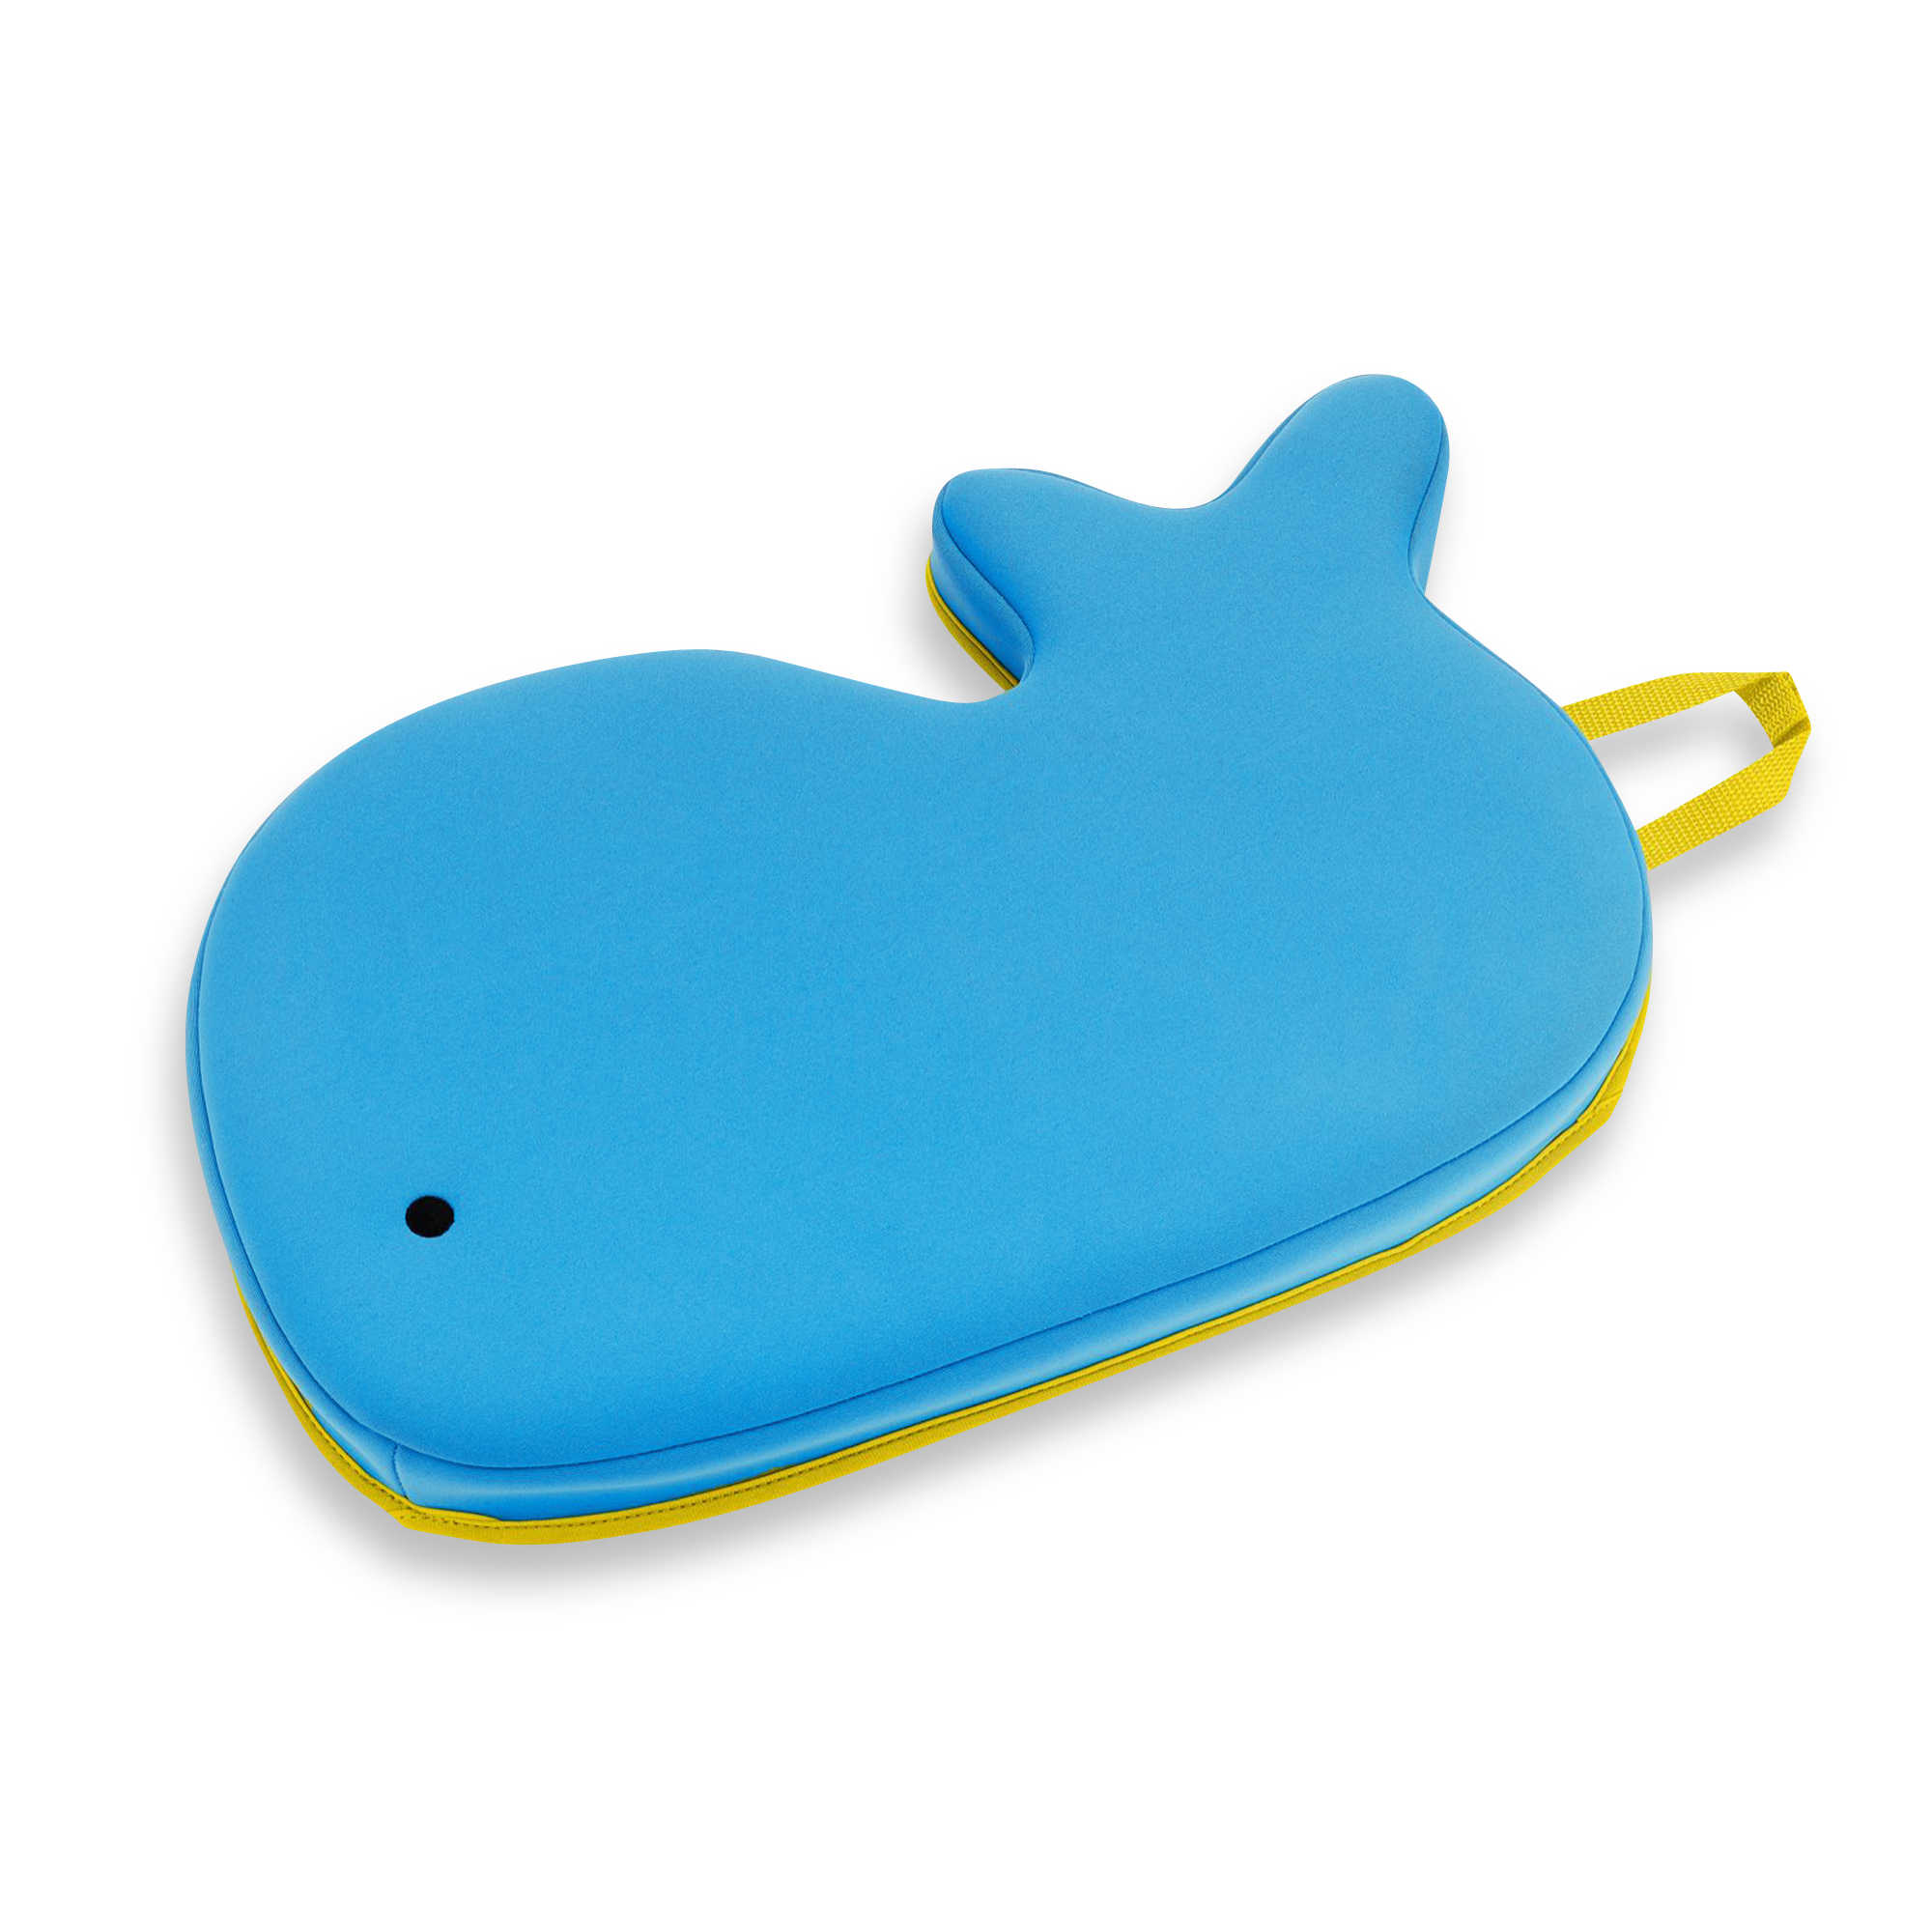 keeps of a while bubbalove bath material slip hop offers slipping australia comfort moby cushion from mats and non baby bit sliding textured skip mat